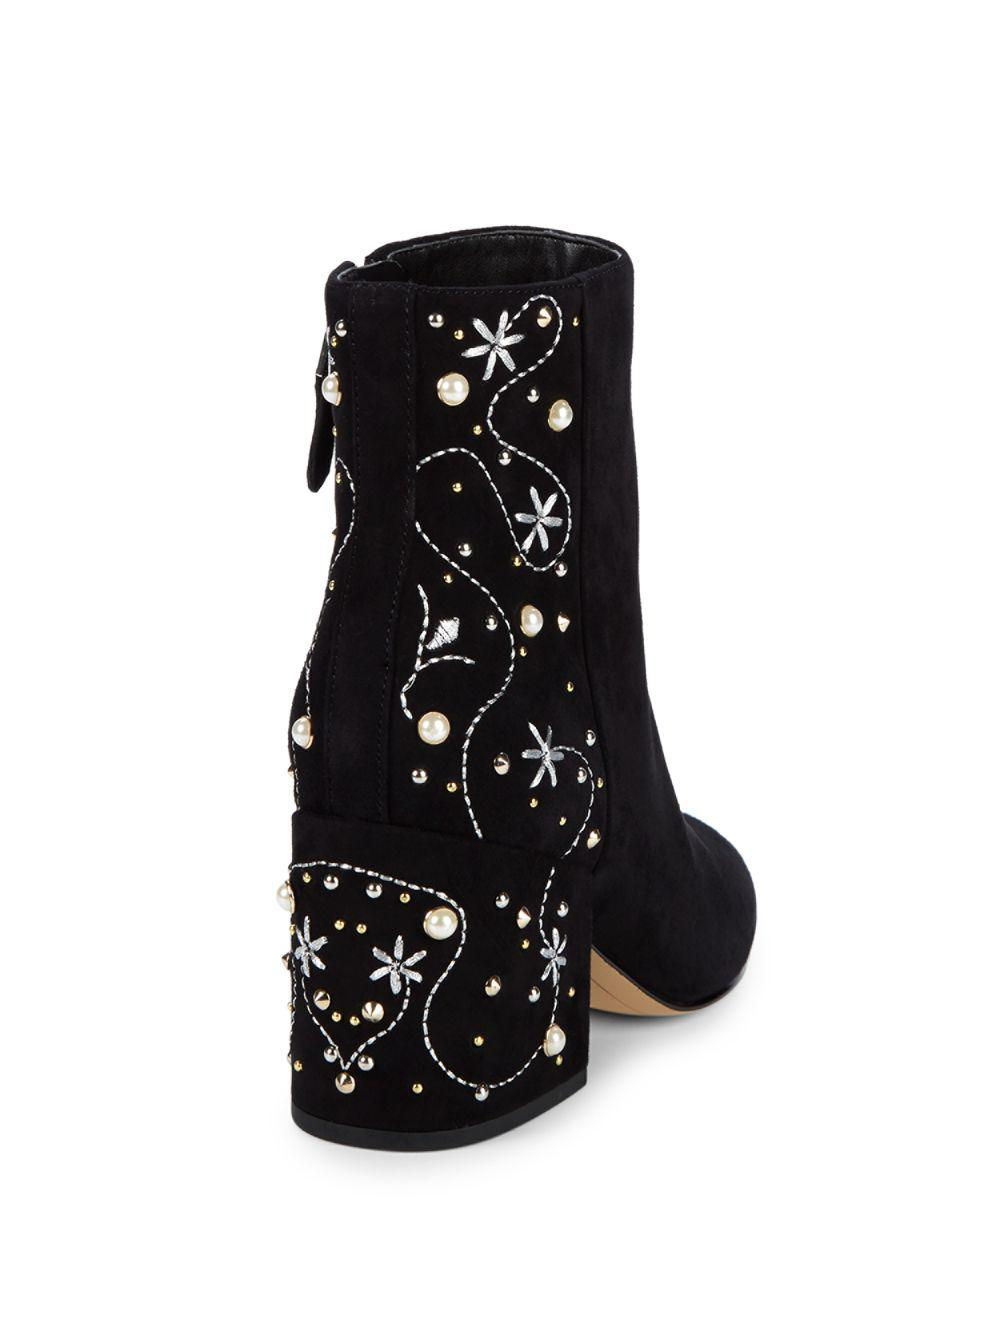 b140ce93780d77 Lyst - Sam Edelman Taft Embroidered Pearl Stud Ankle Boots in Black